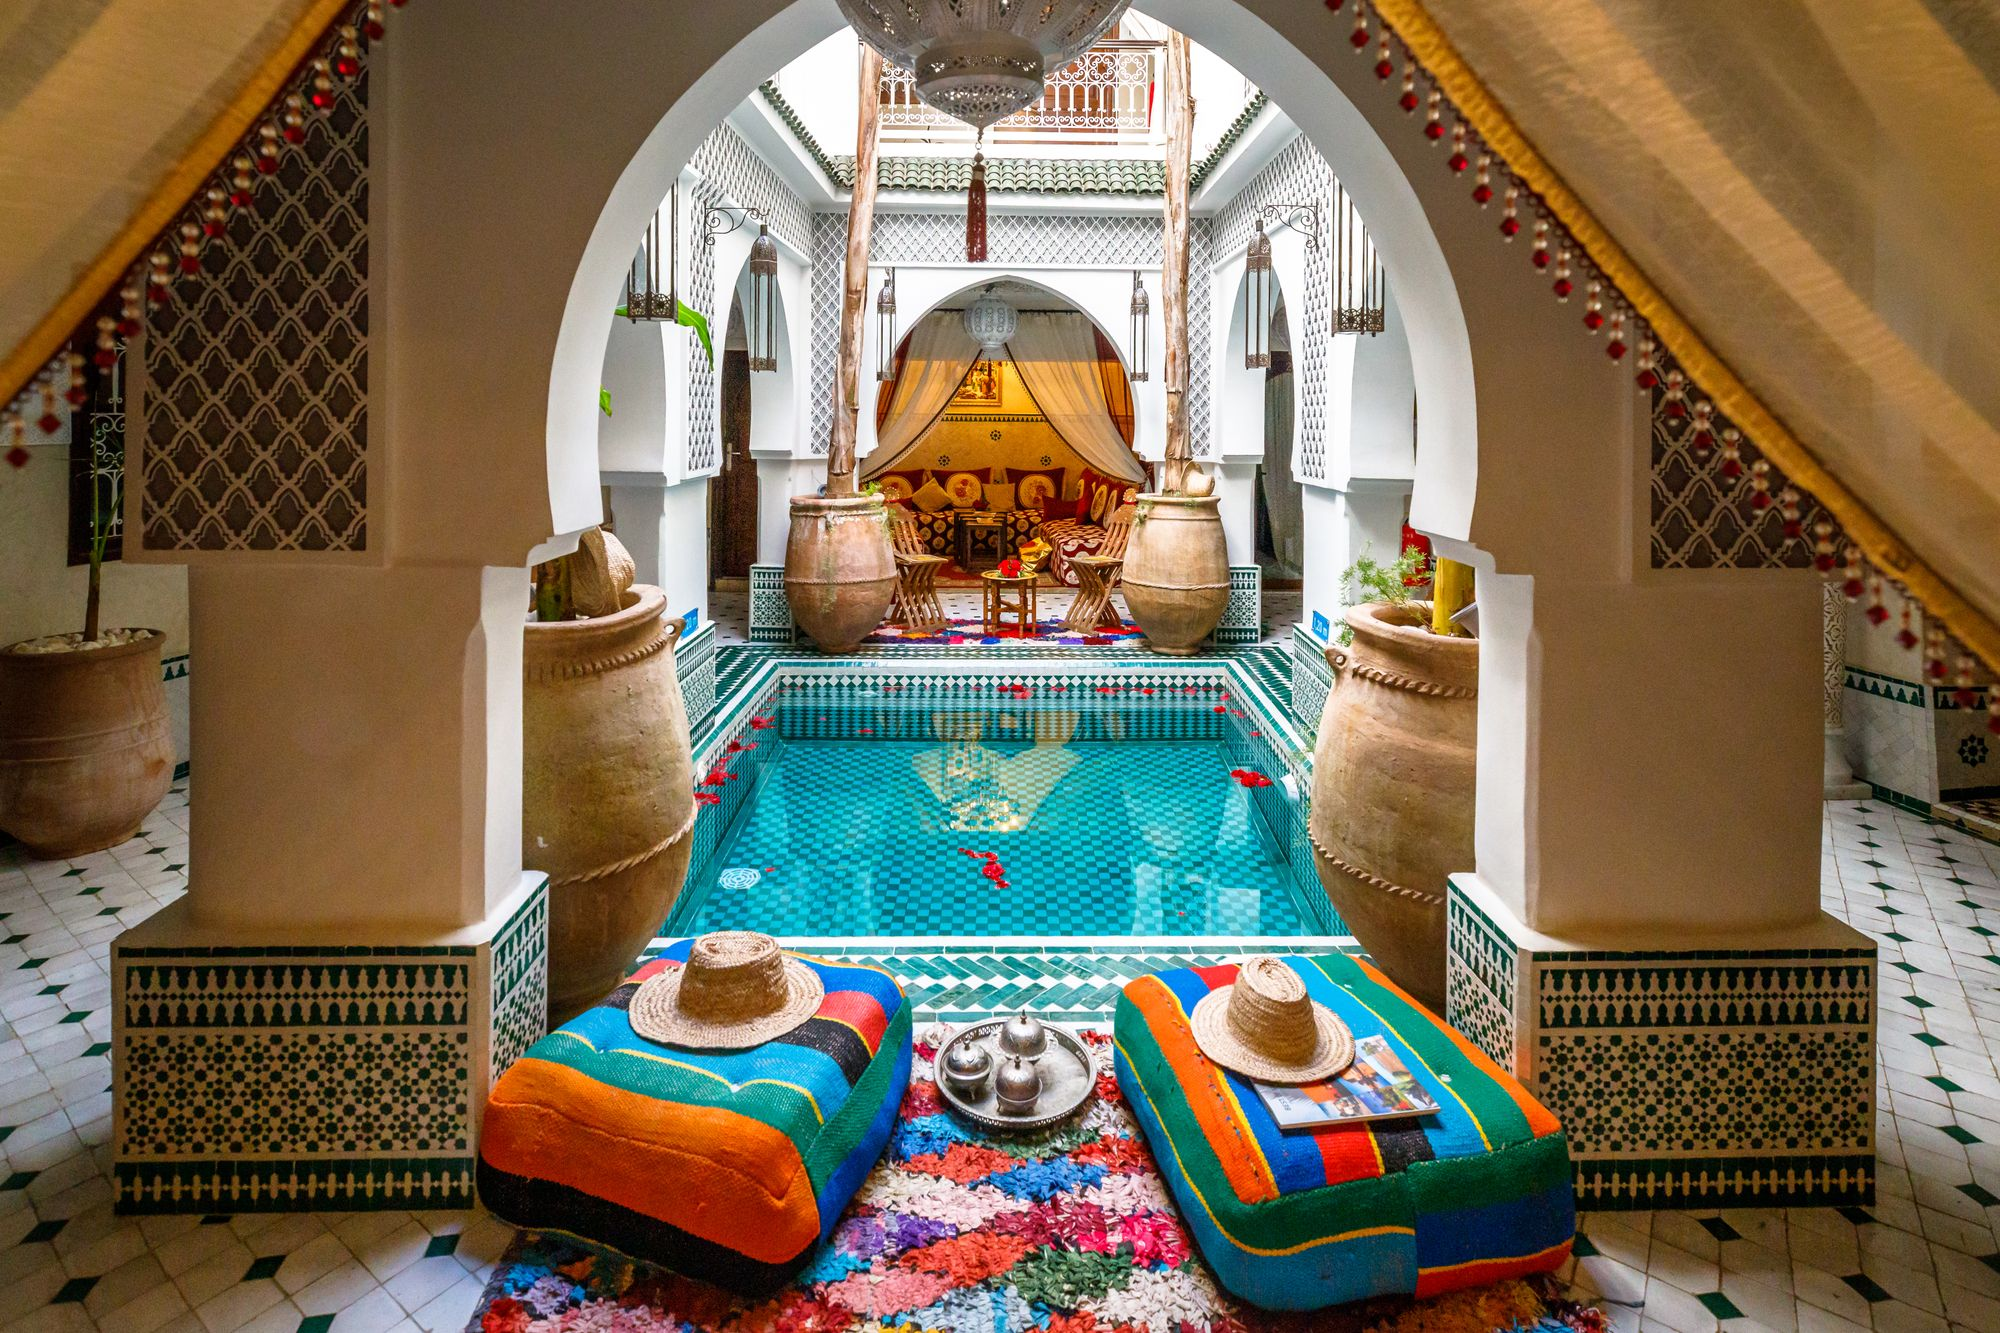 Moroccan villa could be the ideal choice for a relaxed honeymoon or romantic getaway.